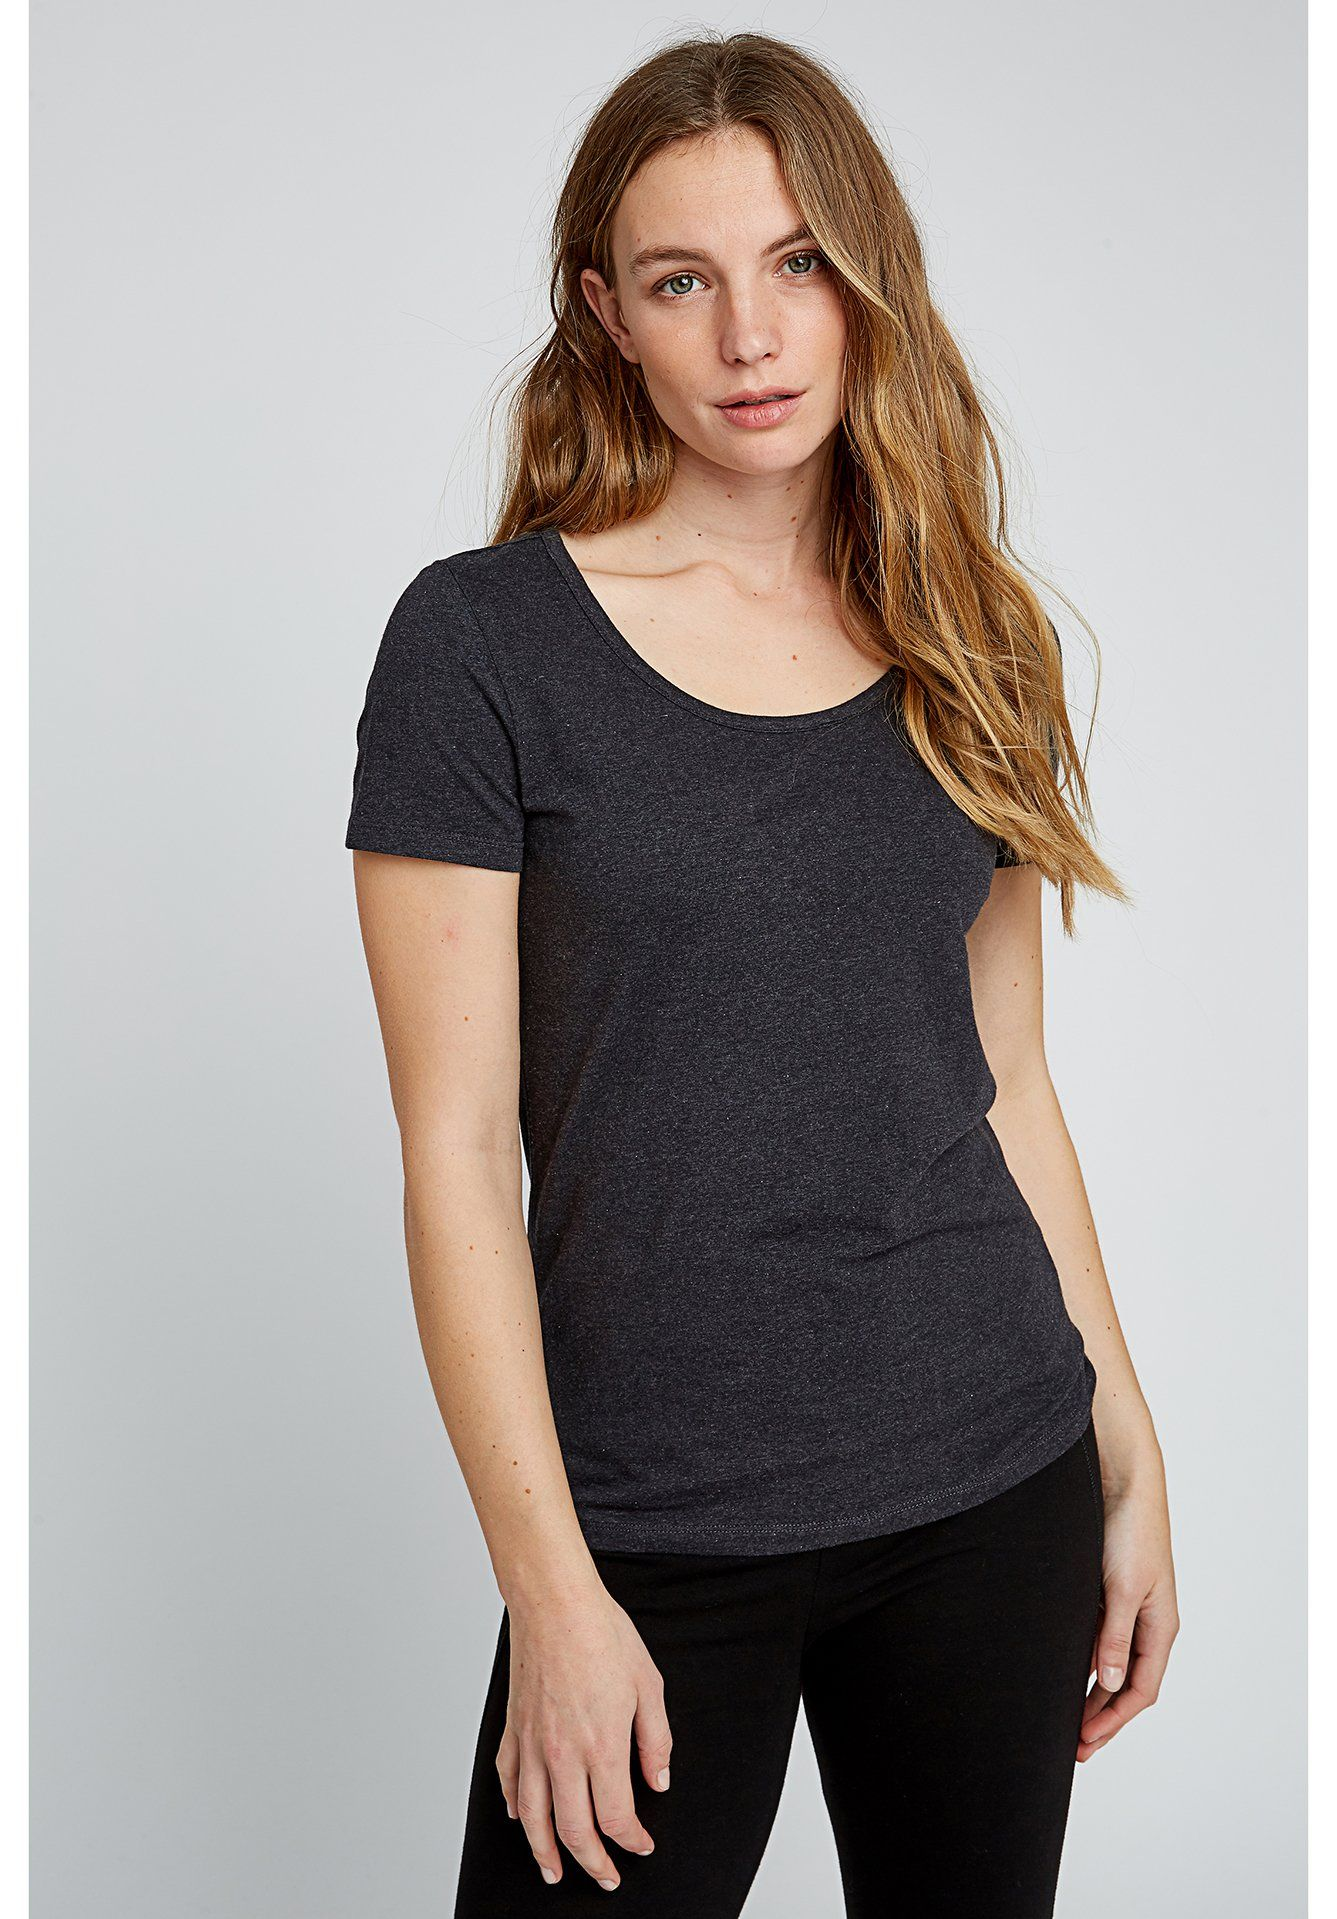 People Tree - Gaia Tee in Grey - Organic Cotton - Weekendbee - sustainable sportswear